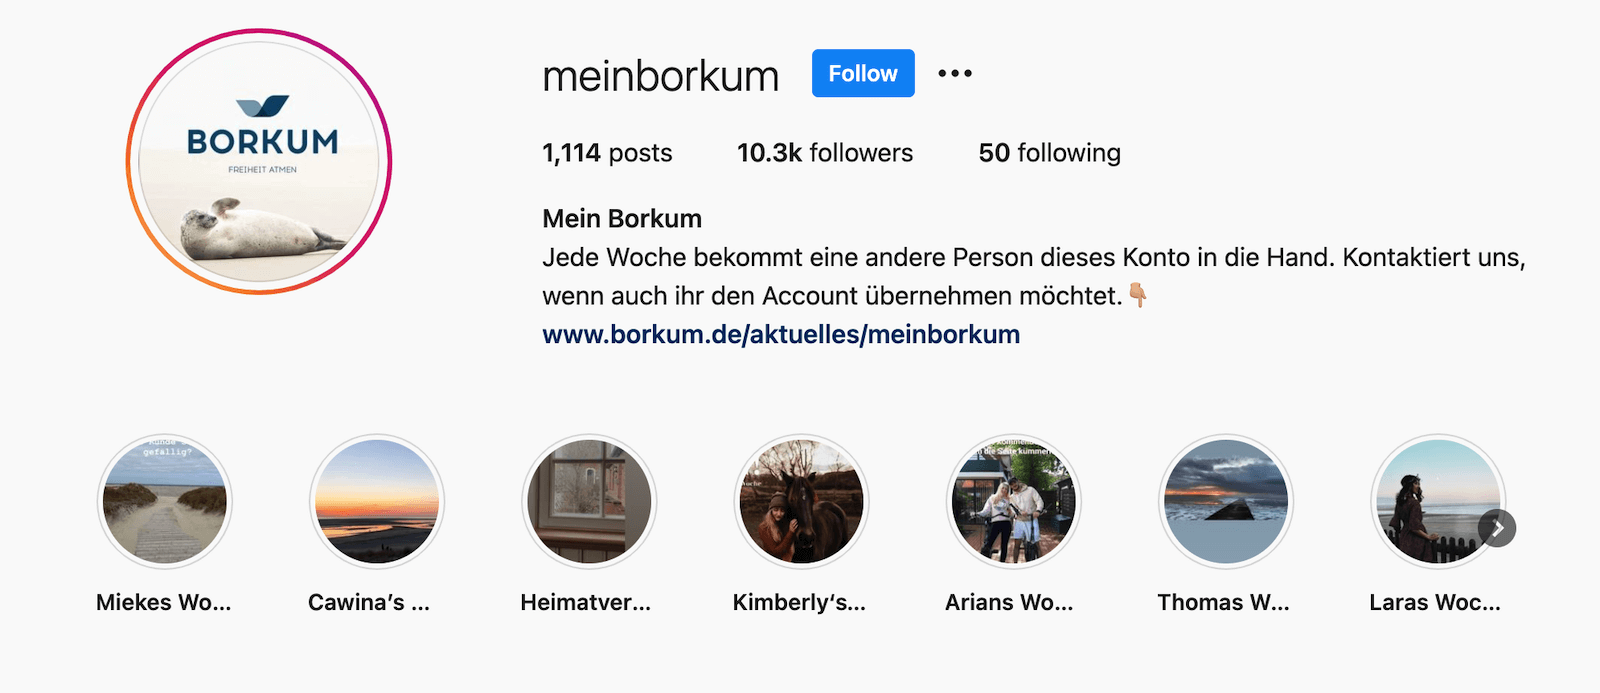 The screenshot shows the Instagram header for the takeover account MeinBorkum. It features an explanation of how the takeovers work and where to apply for one. The story highlights are segmented, showing one for each of the recent takeover weeks.